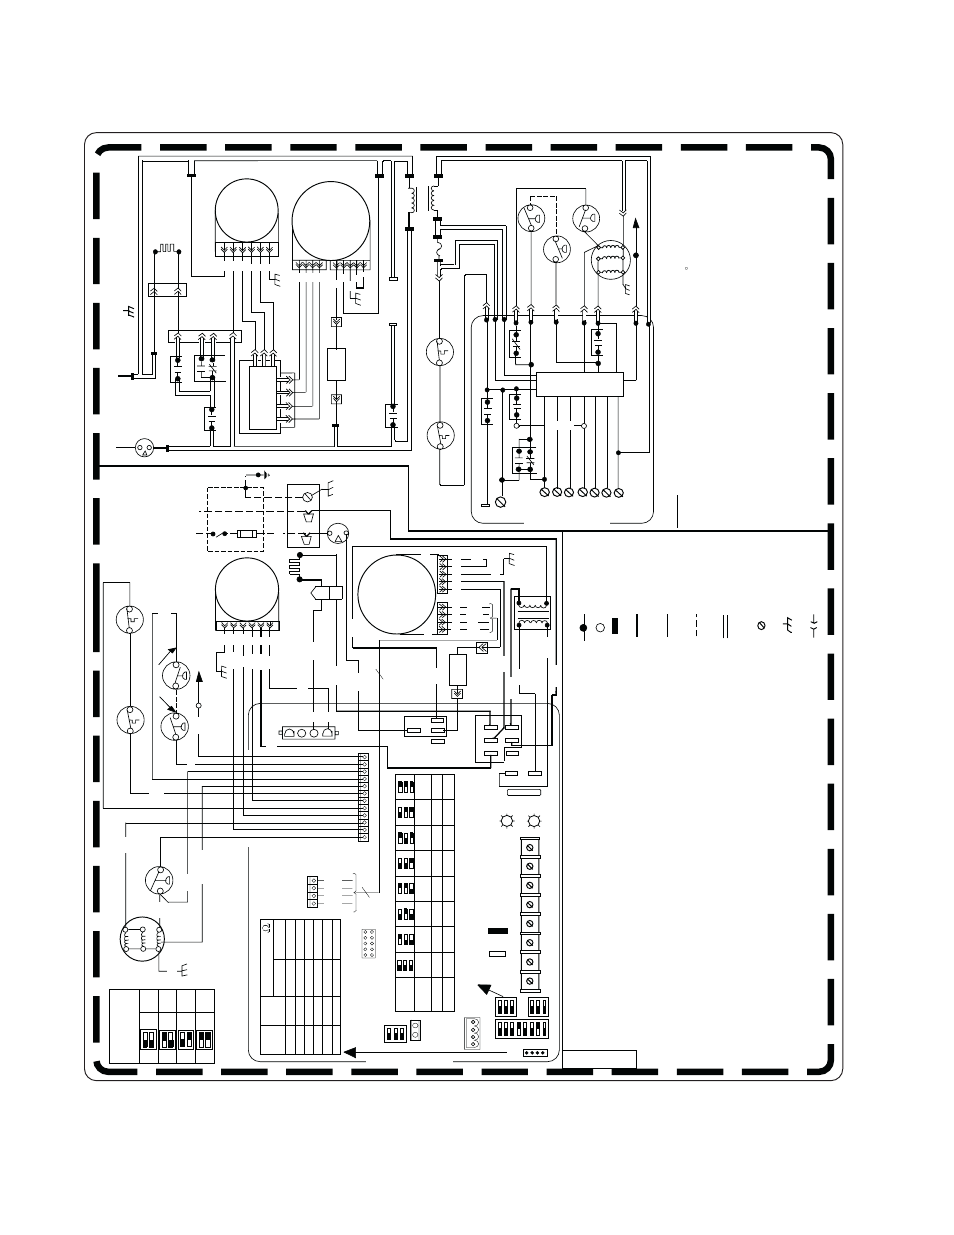 medium resolution of fig 18 wiring diagram bryant 355mav user manual page 14 20 bryant humidifier wiring diagram